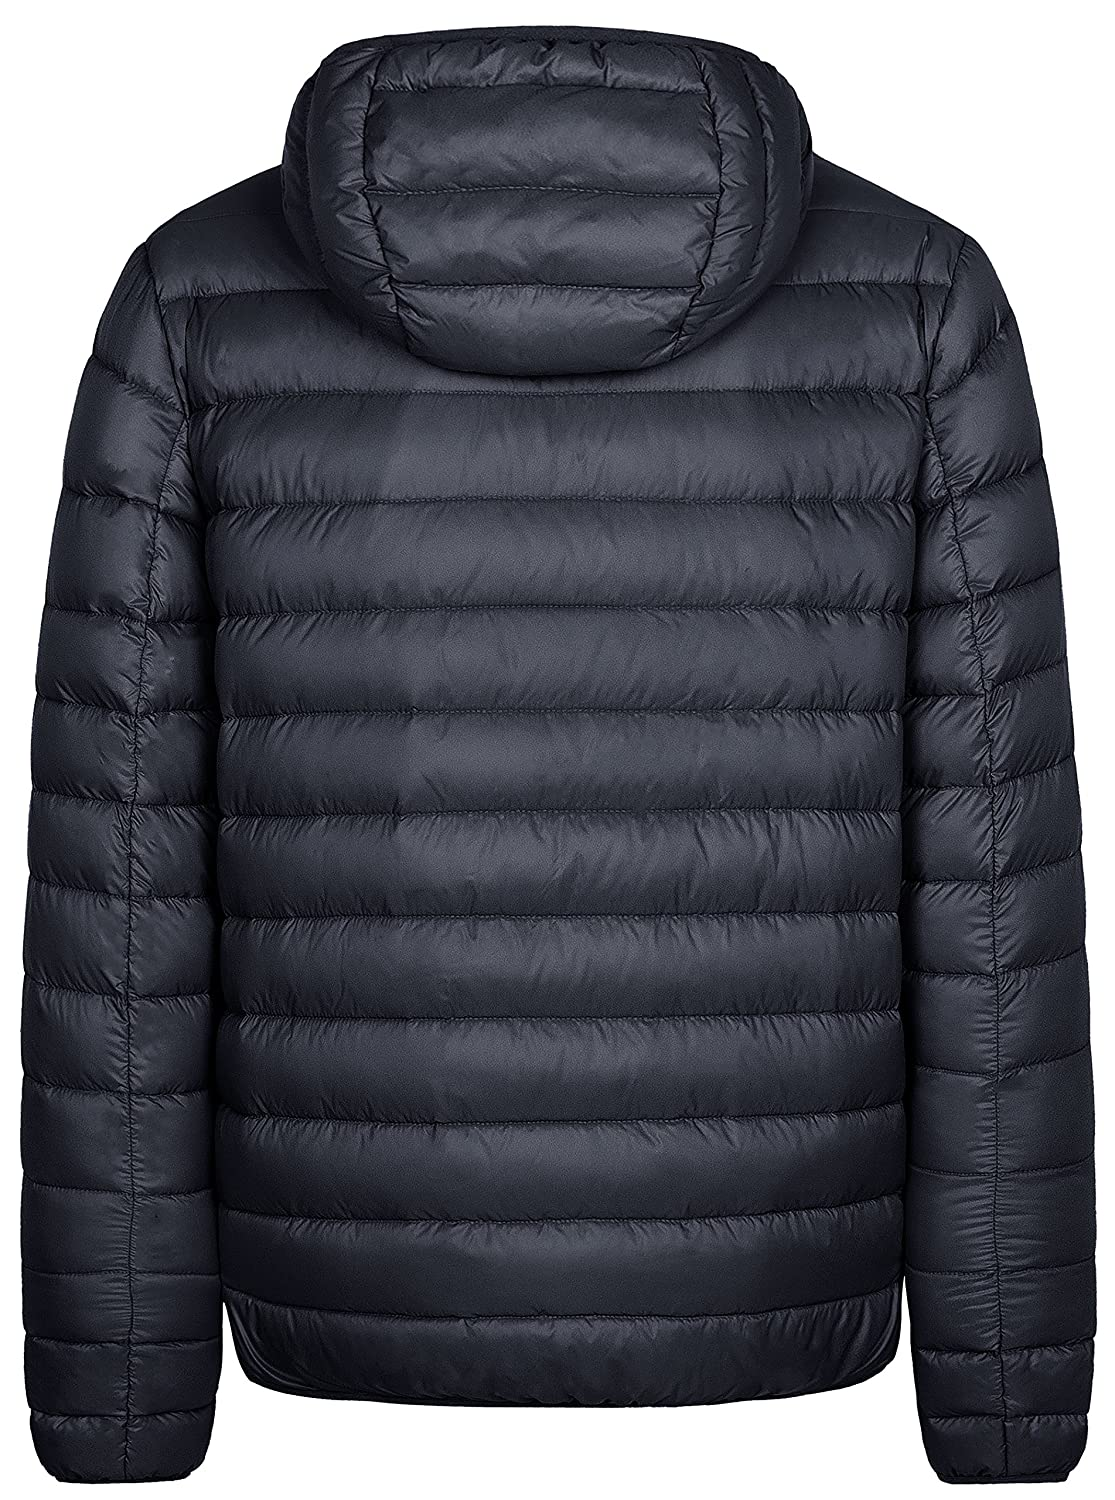 f1c074da6d1 Wantdo Men's Hooded Packable Light Weight Down Puffer Jacket at Amazon Men's  Clothing store: